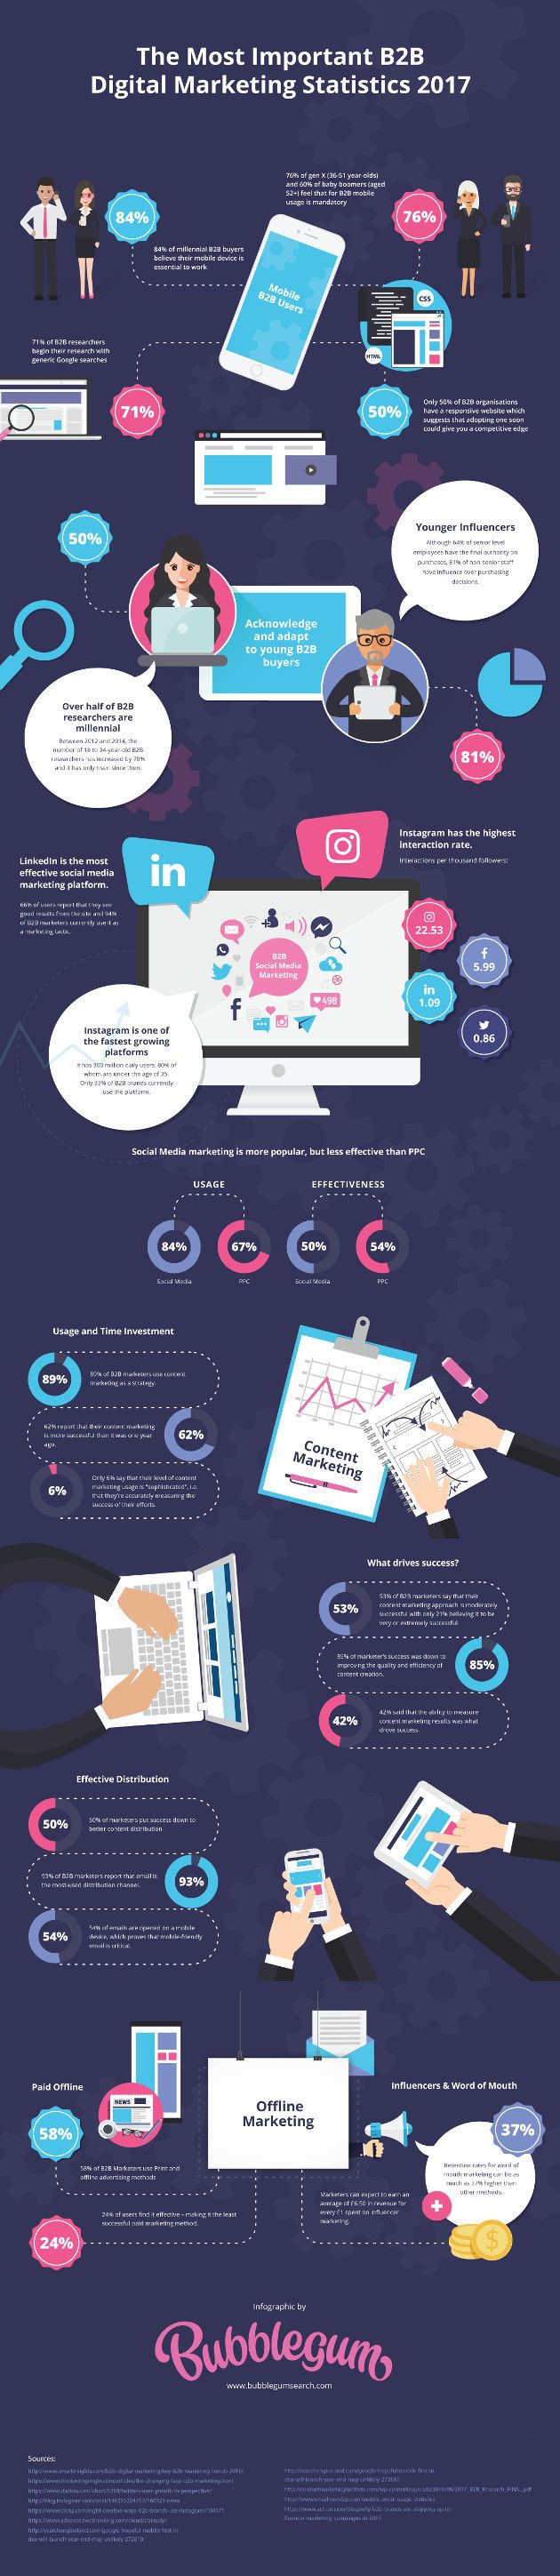 Marketing Strategy - The Most Important B2B Digital Marketing Trends and Stats of 2017 [Infographic] : MarketingProfs Article